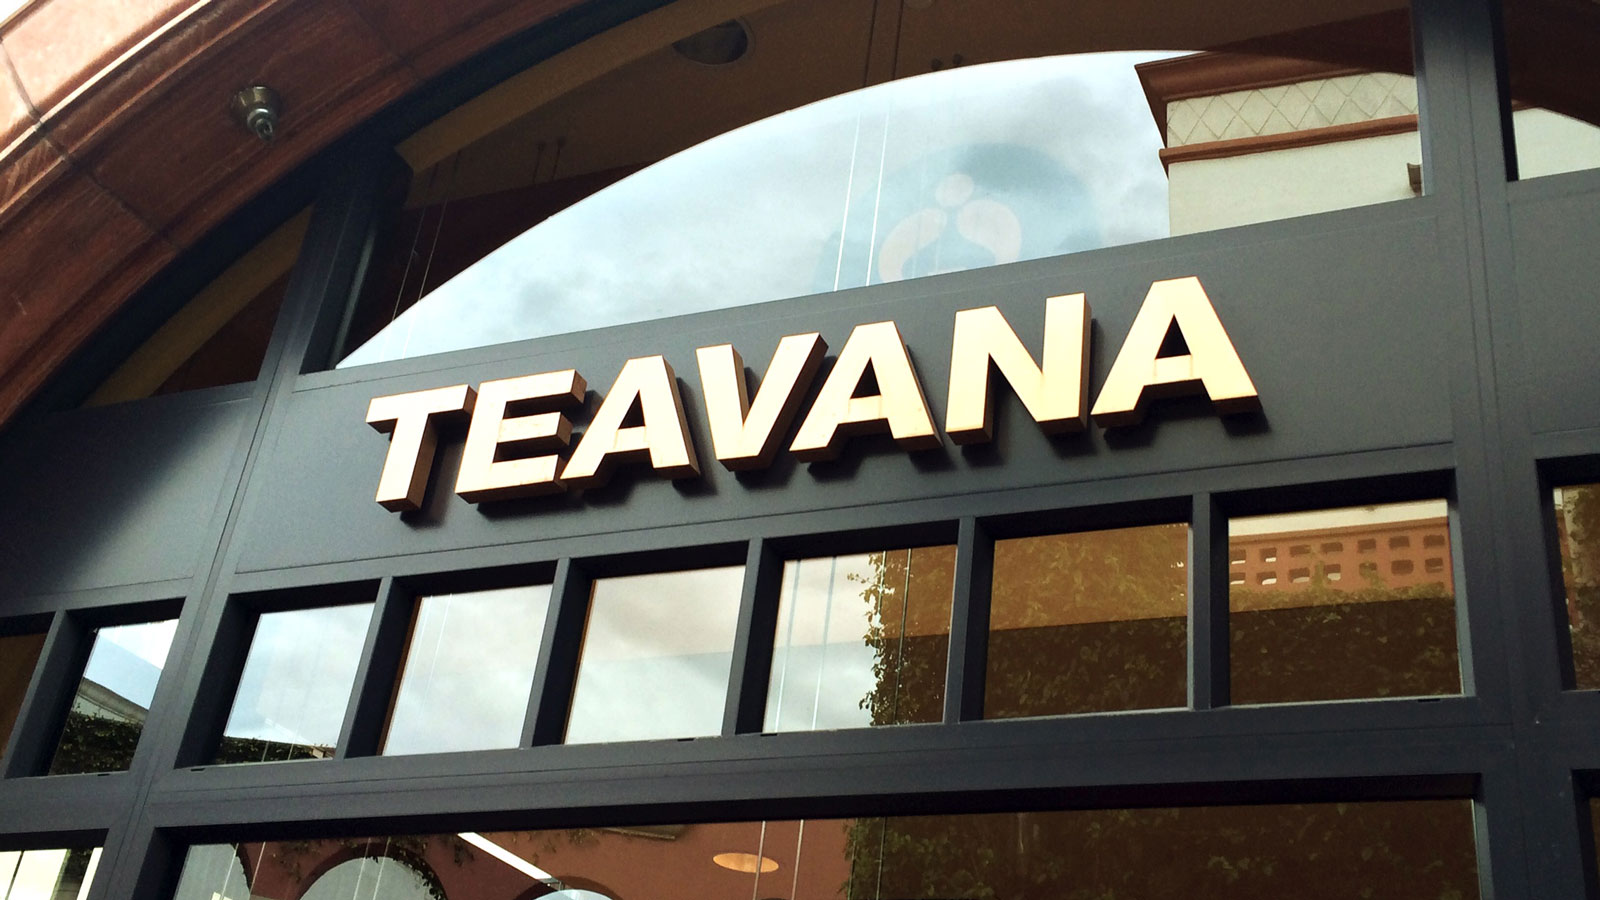 EC: Starbucks to Close All 379 Teavana Stores